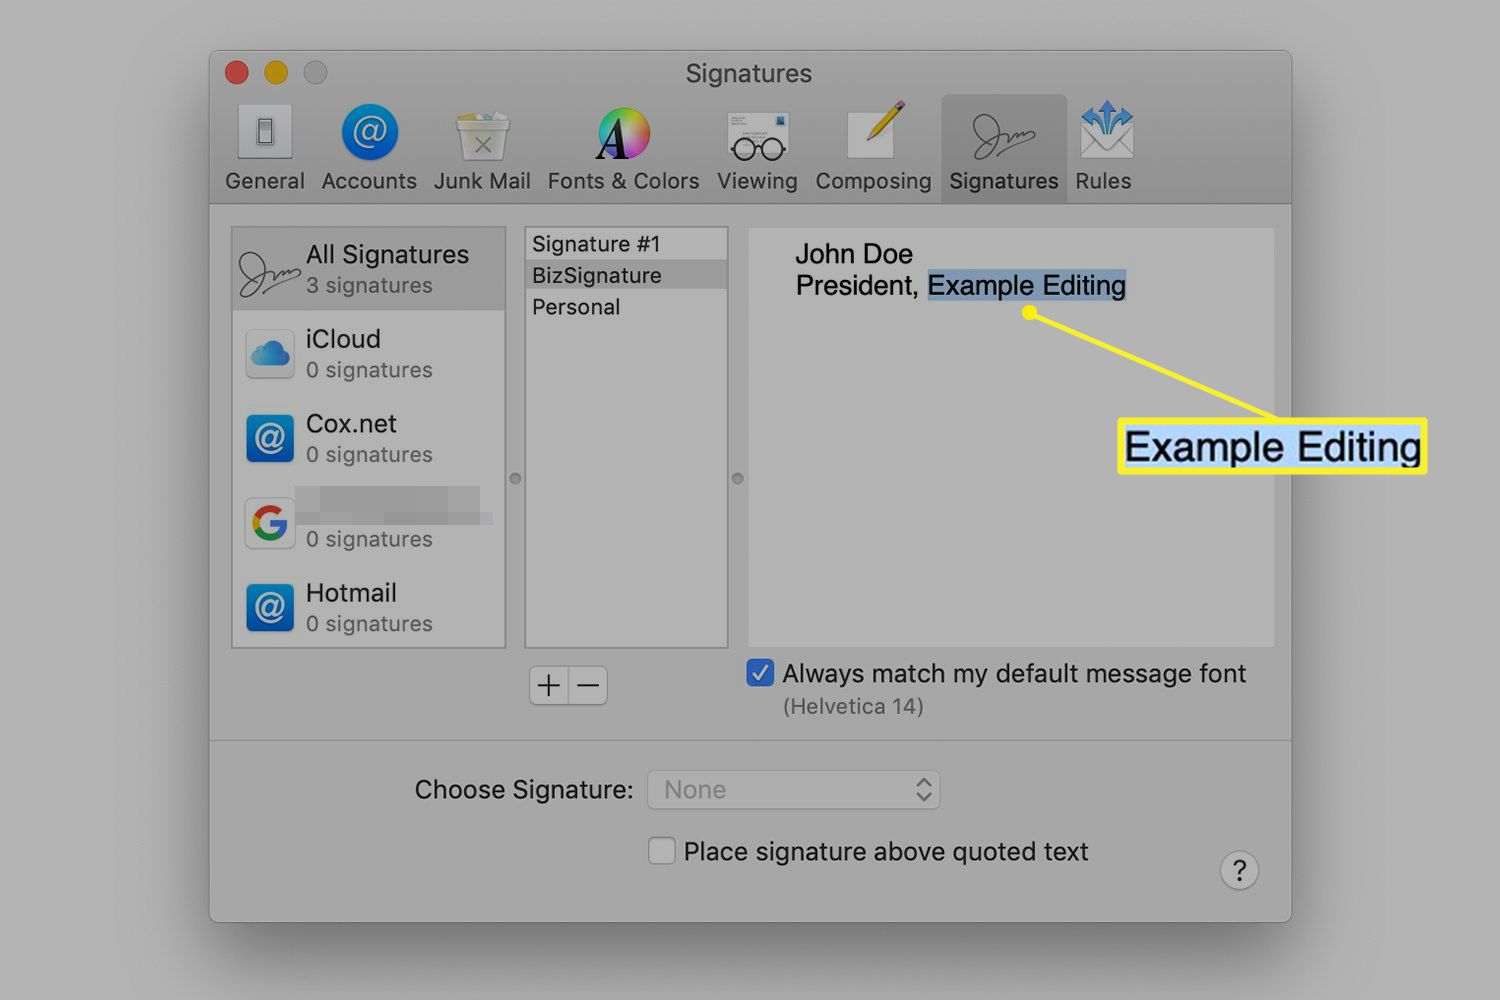 Company name highlighted for macOS Mail signature link